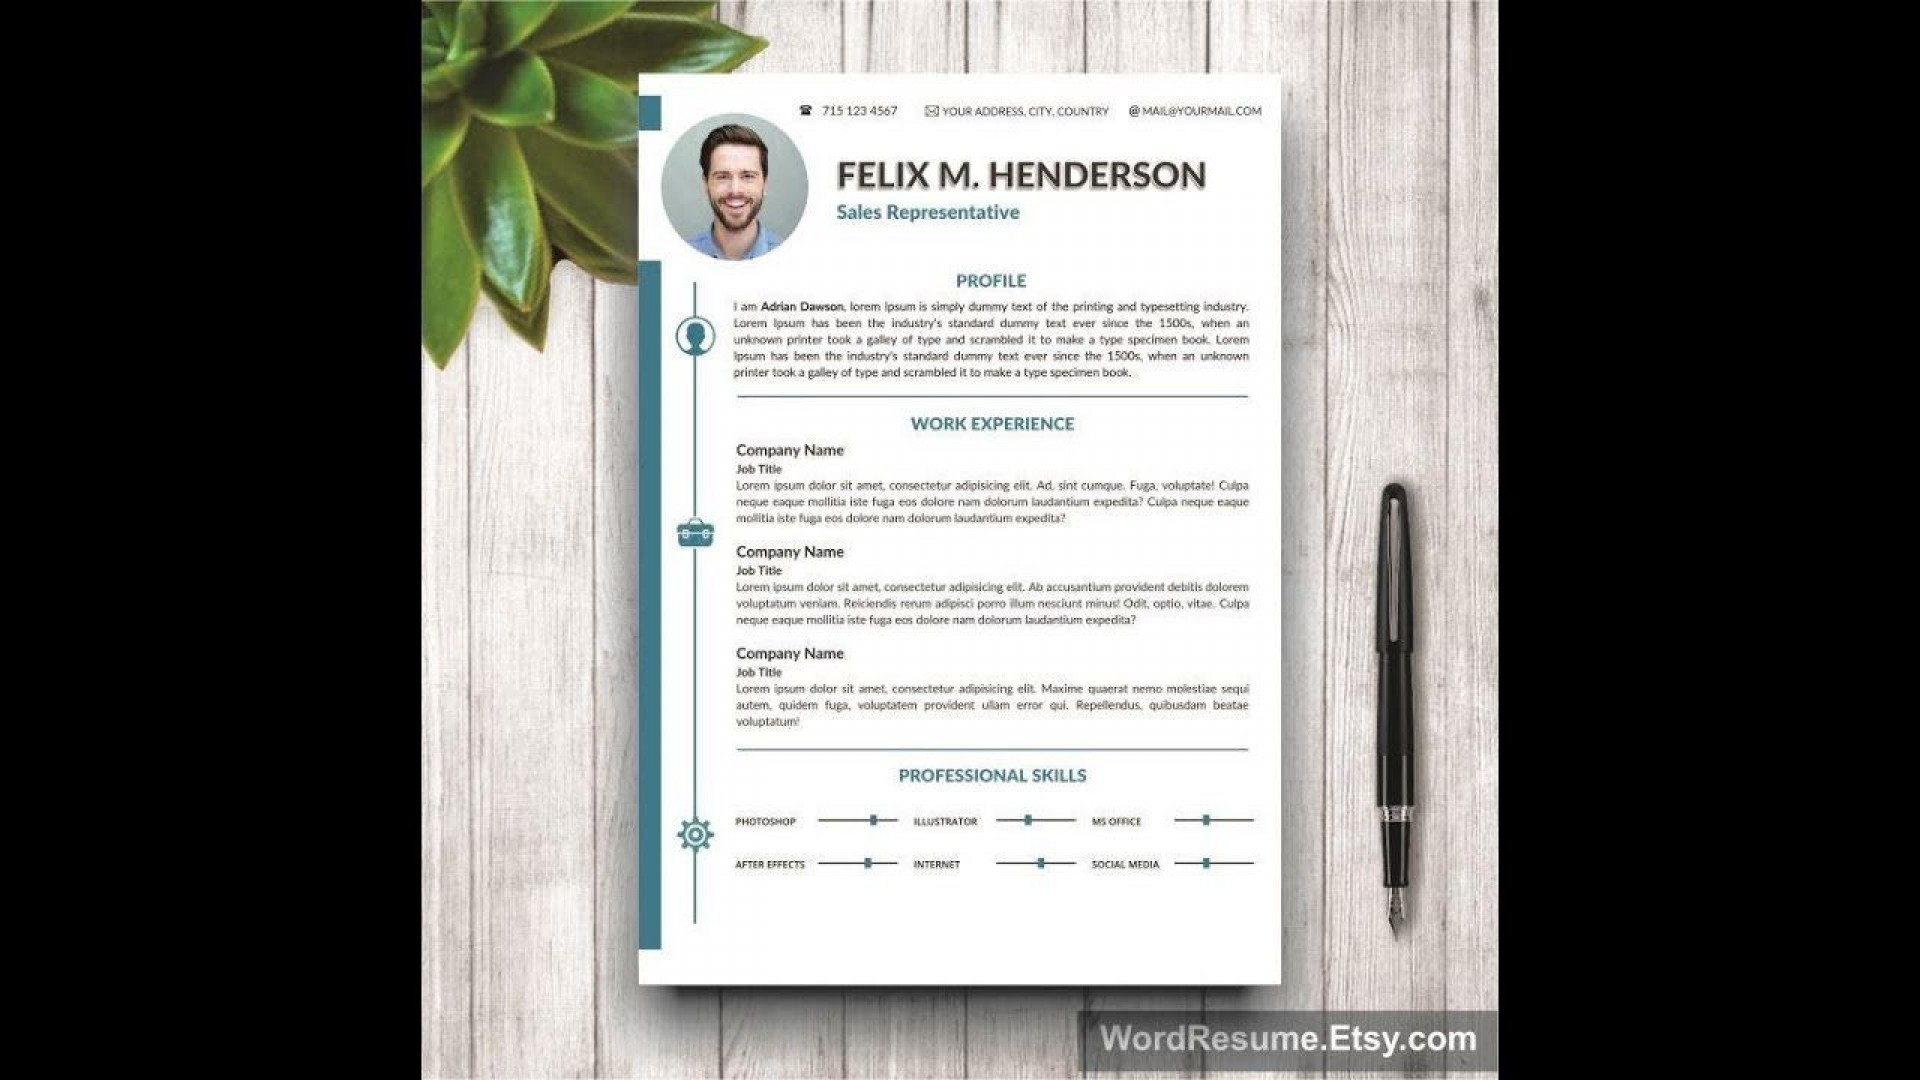 005 Staggering Microsoft Word Portfolio Template Idea  Career Professional Free Download1920